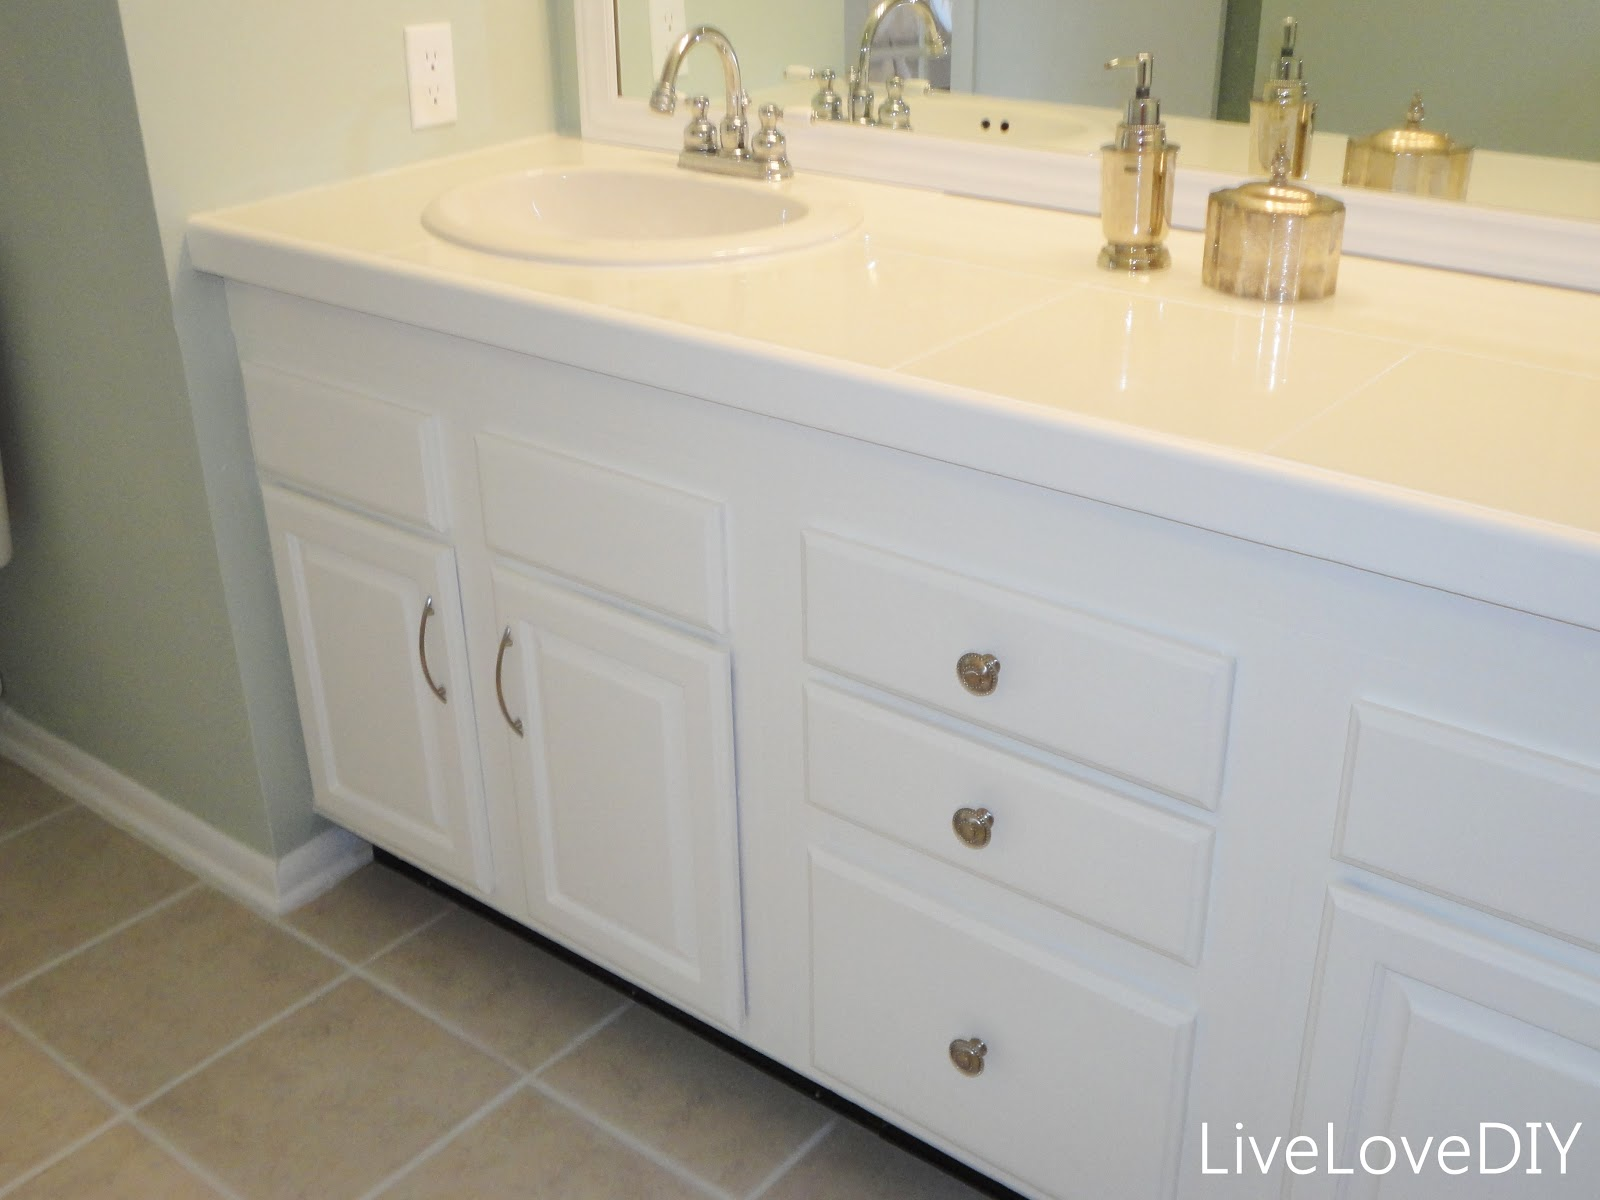 How To Update Bathroom Cabinets Livelovediy Easy Diy Ideas For Updating Your Bathroom